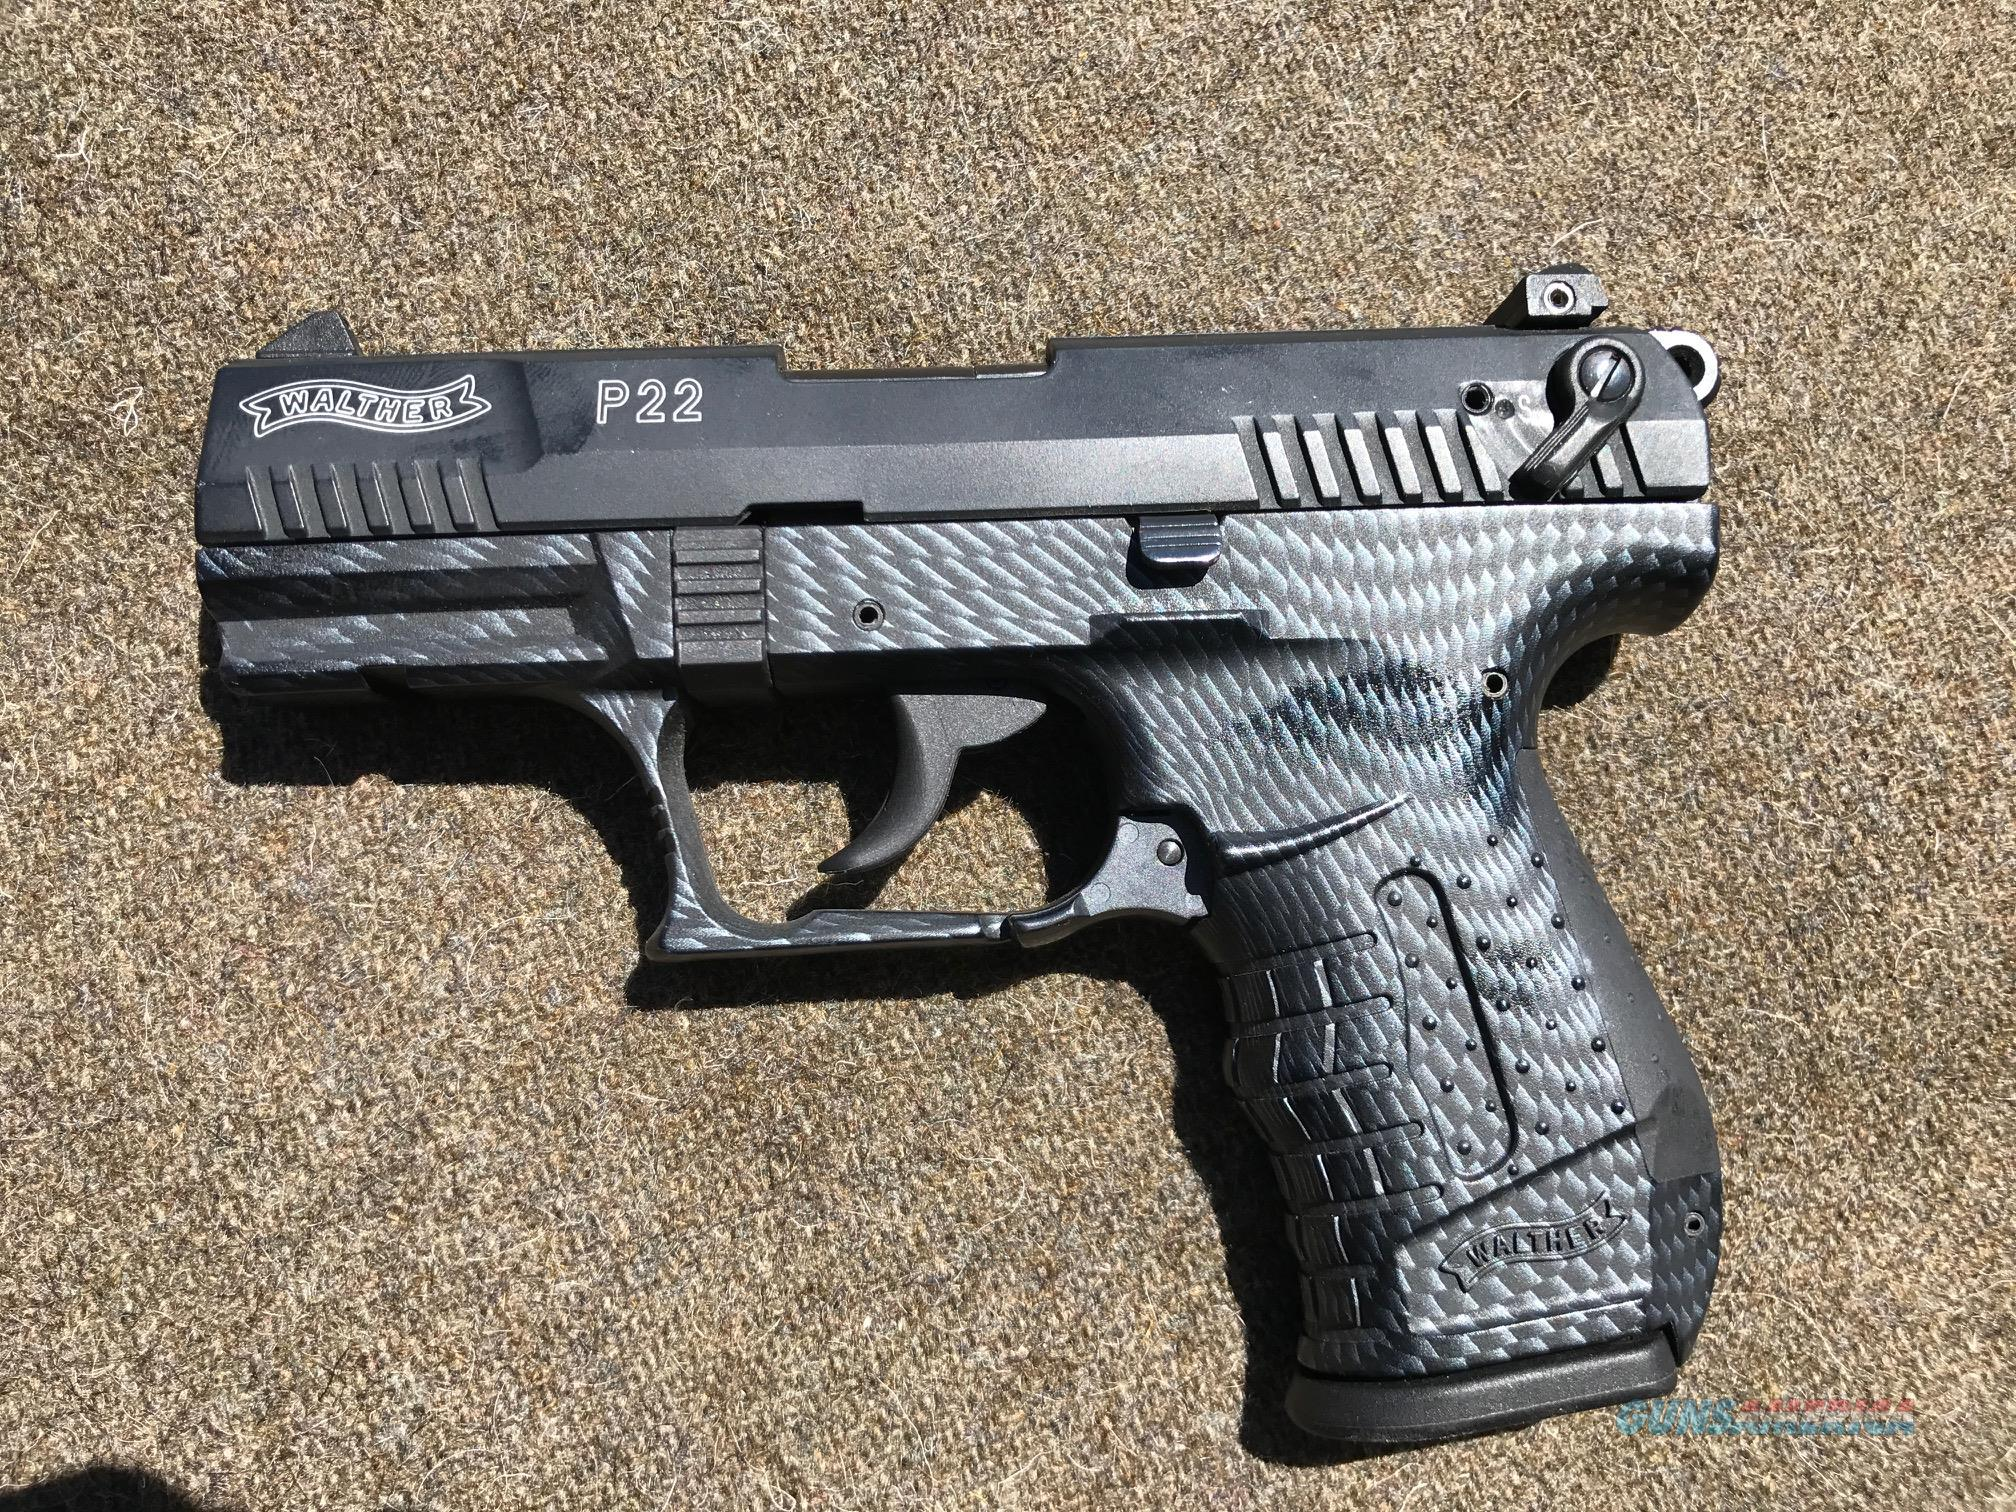 Smith and Wesson P22  Guns > Pistols > Smith & Wesson Pistols - Autos > .22 Autos